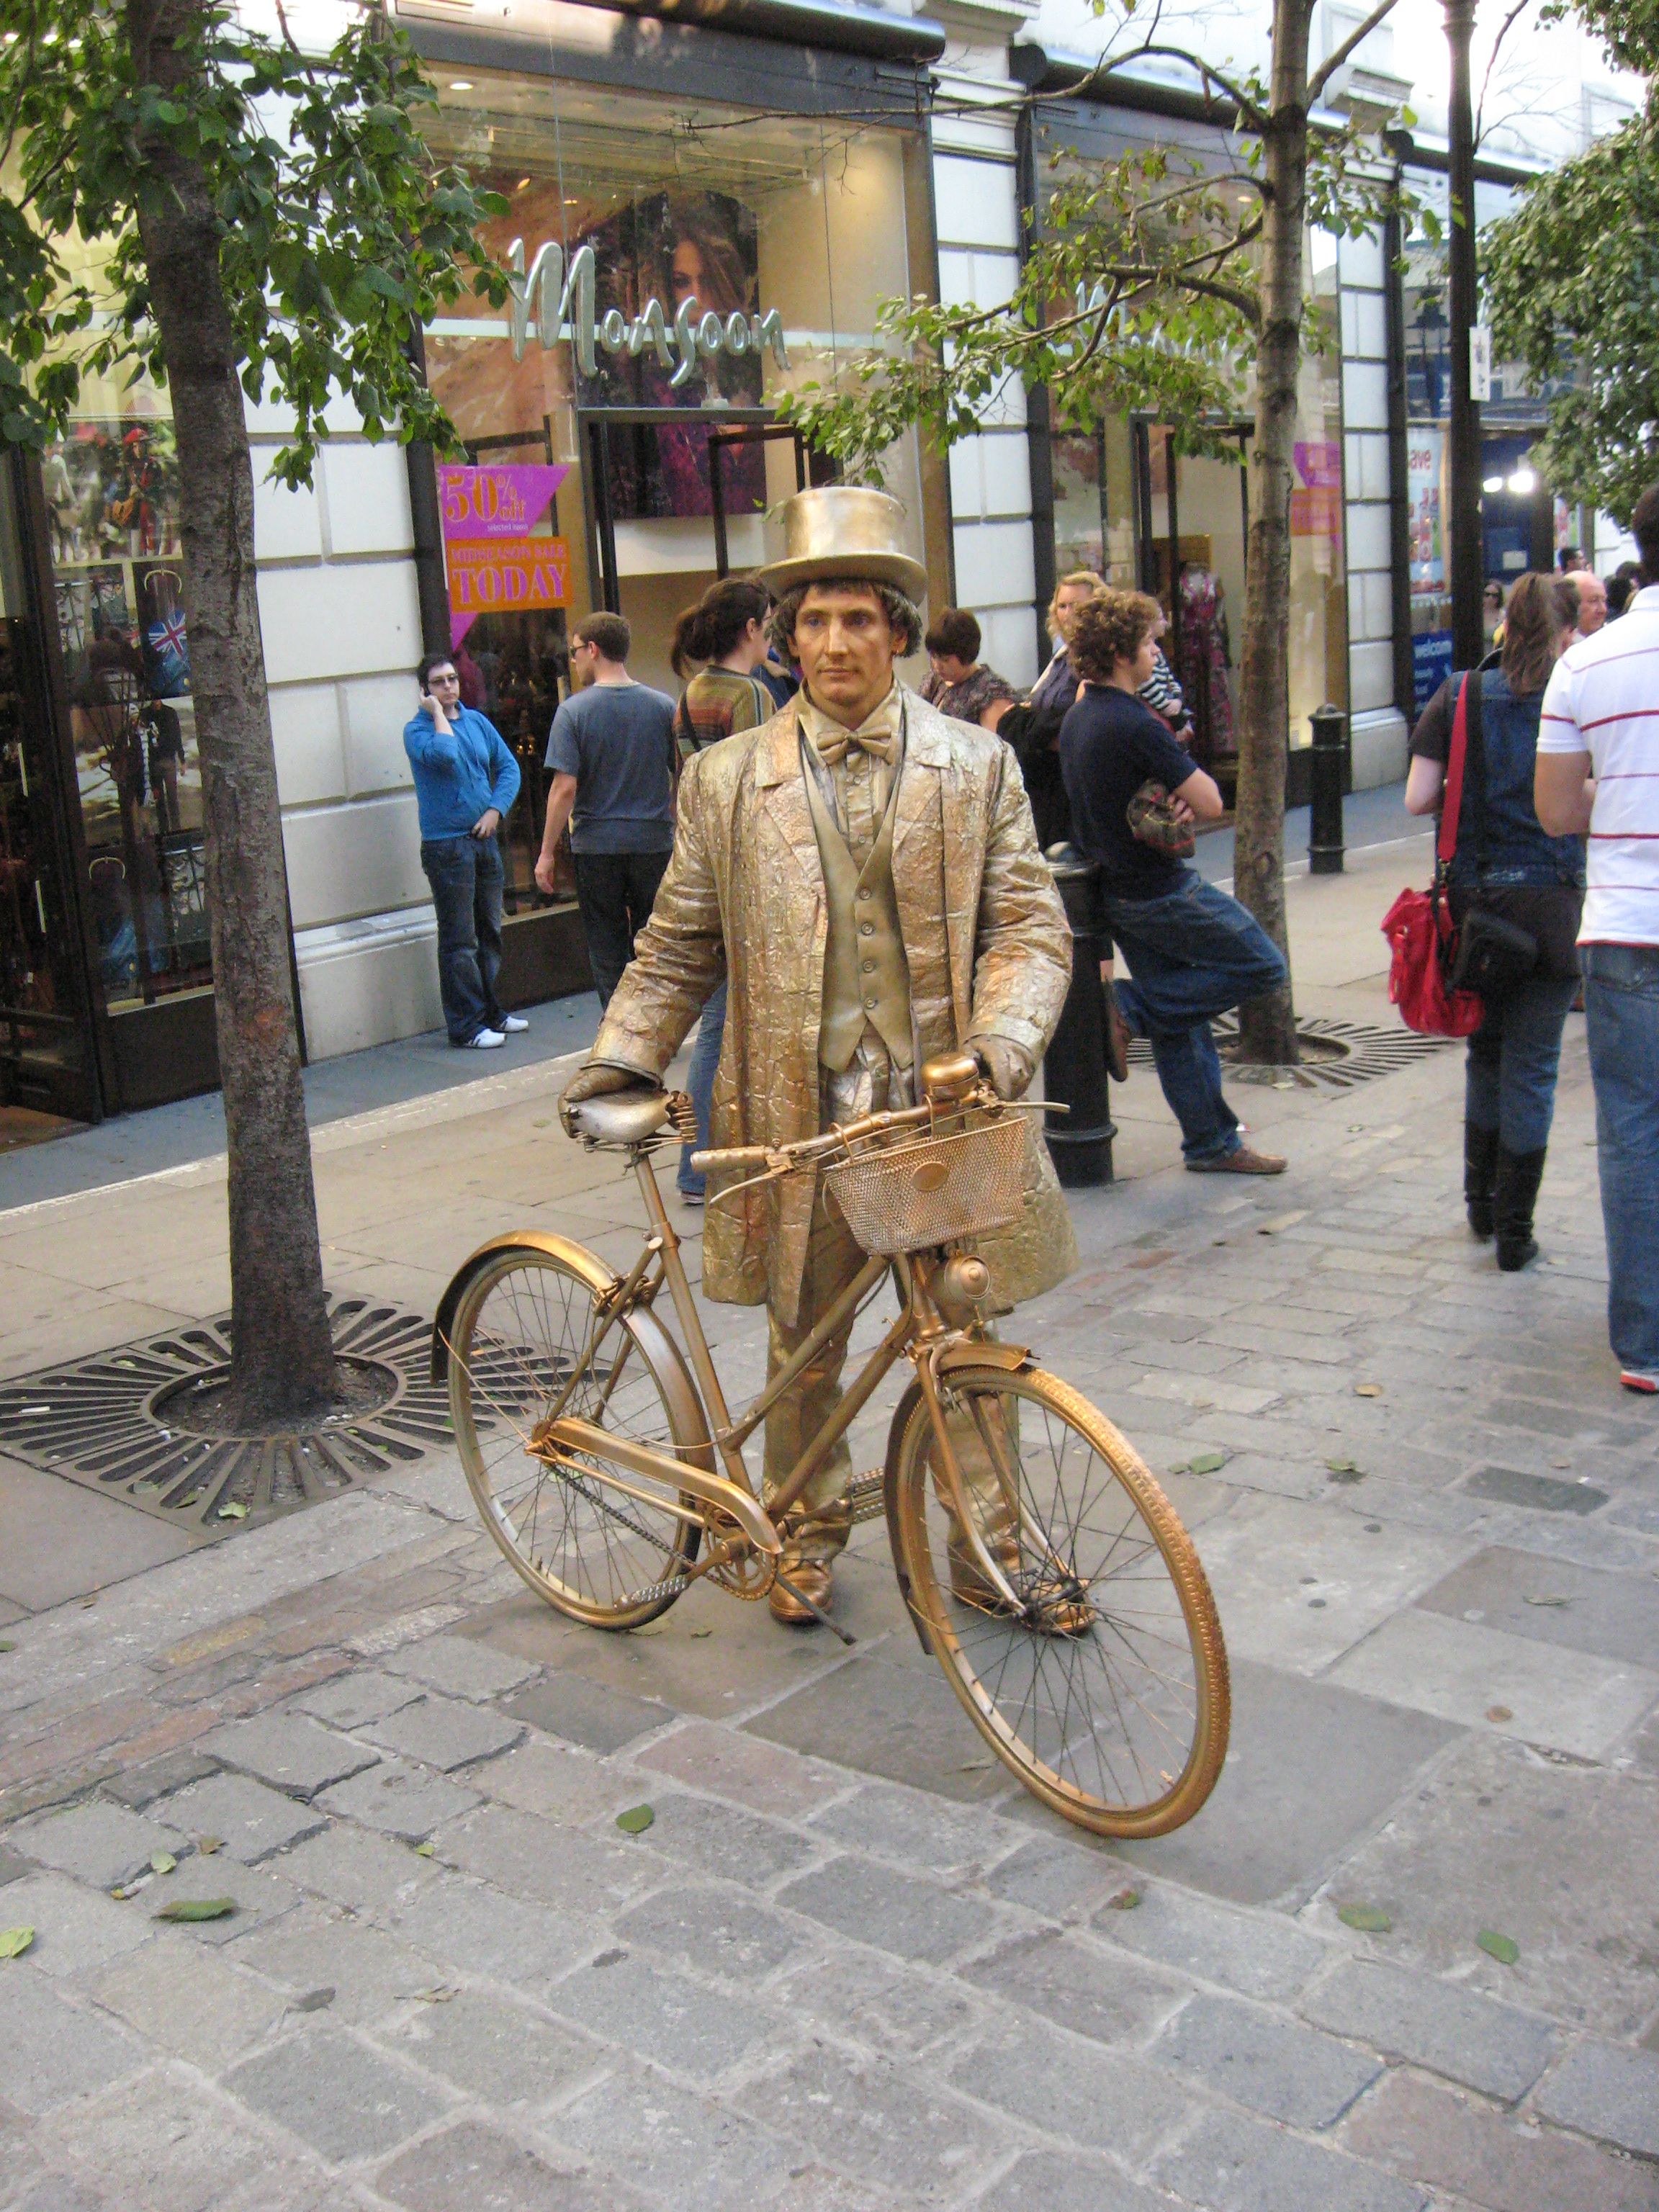 File:Covent Garden Living Statue